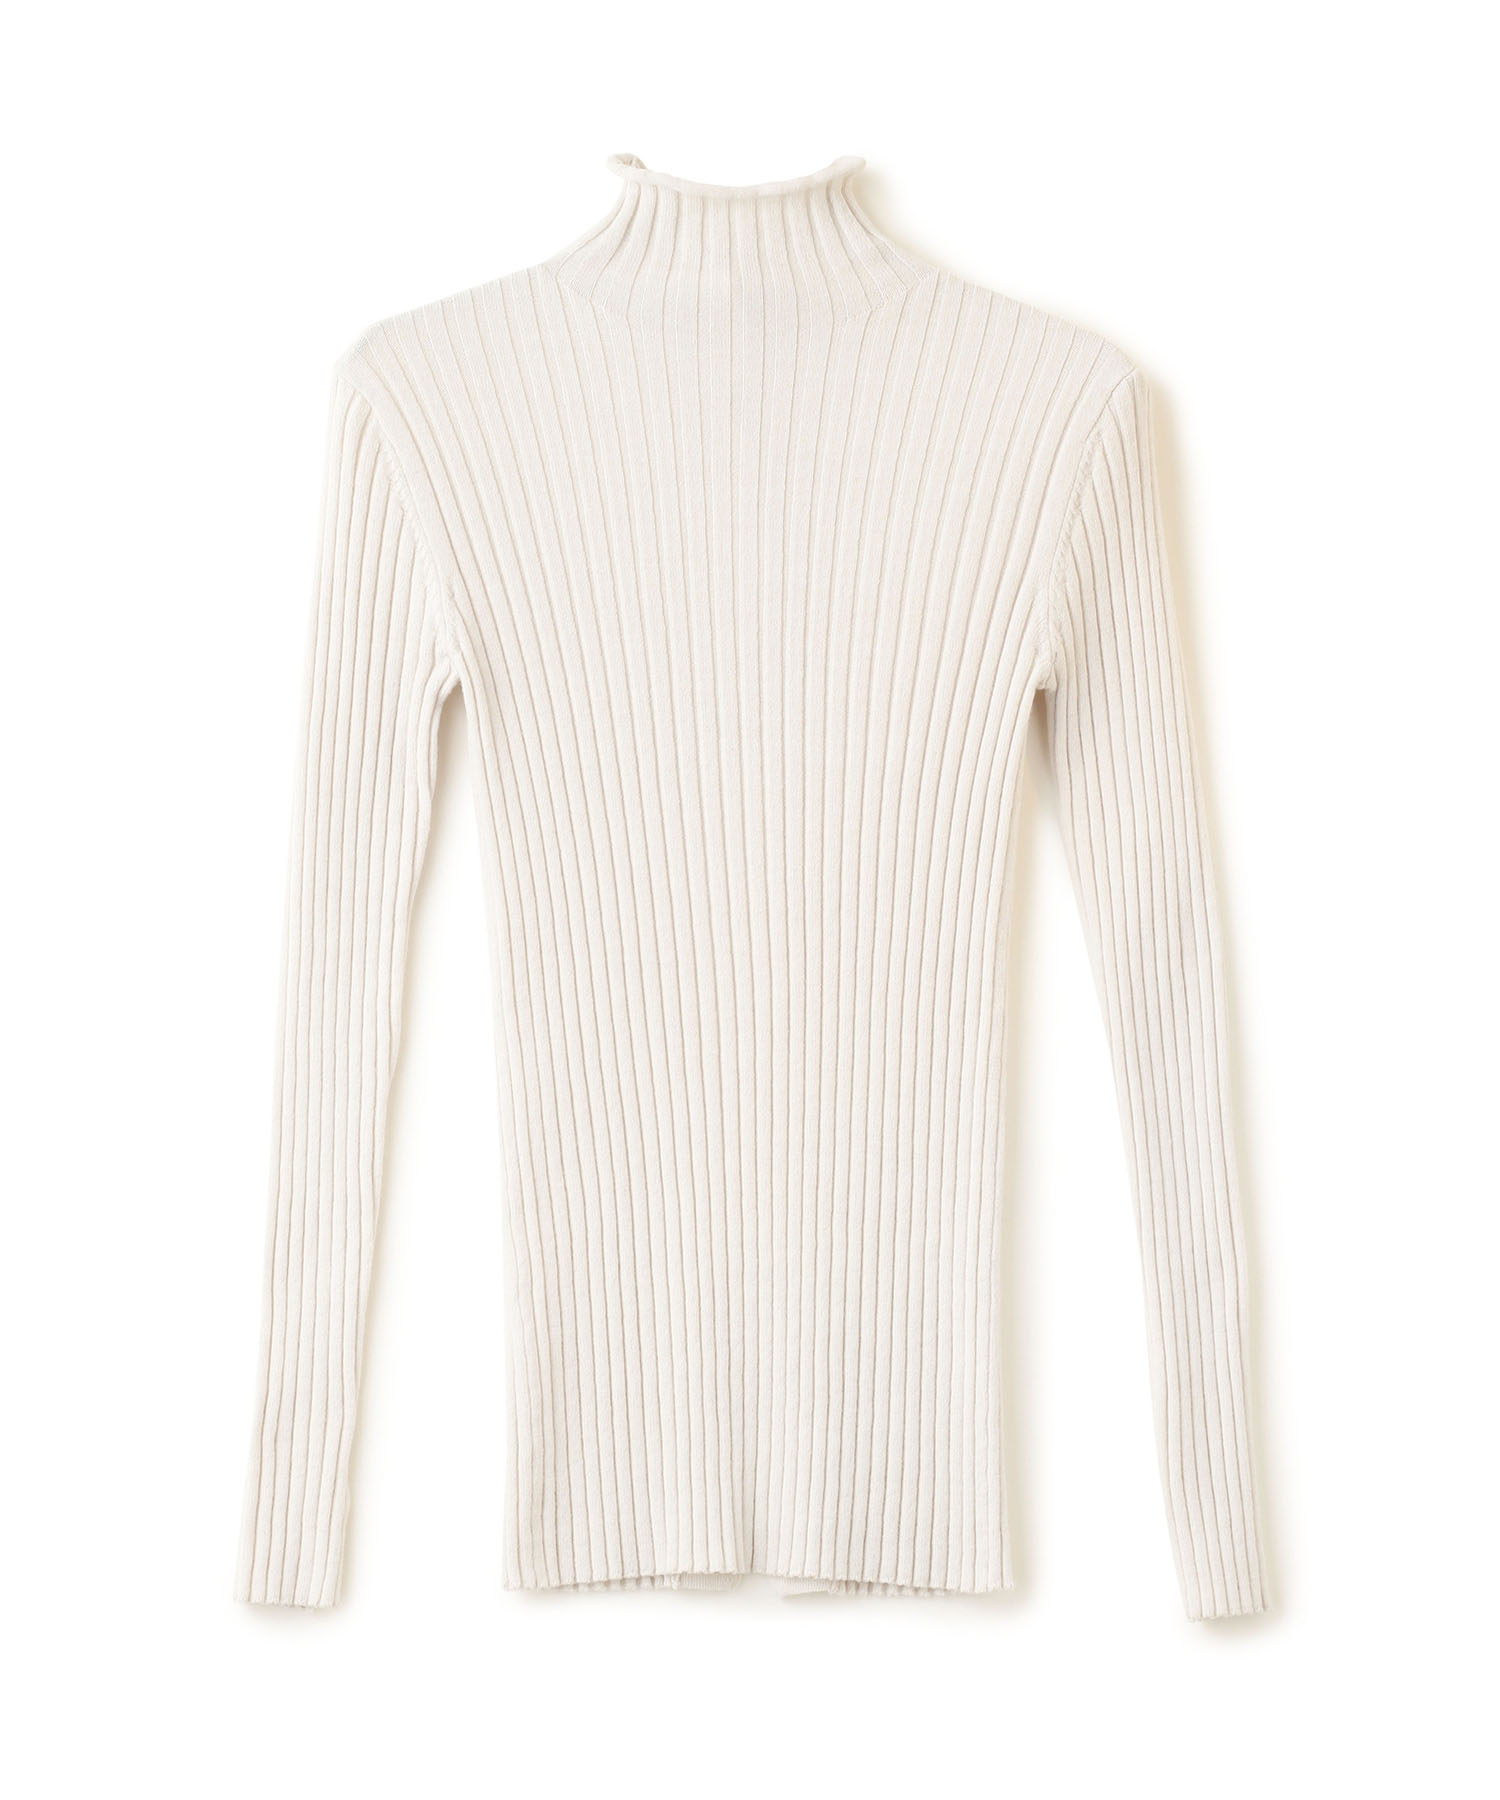 Button Lib Knit Pullover